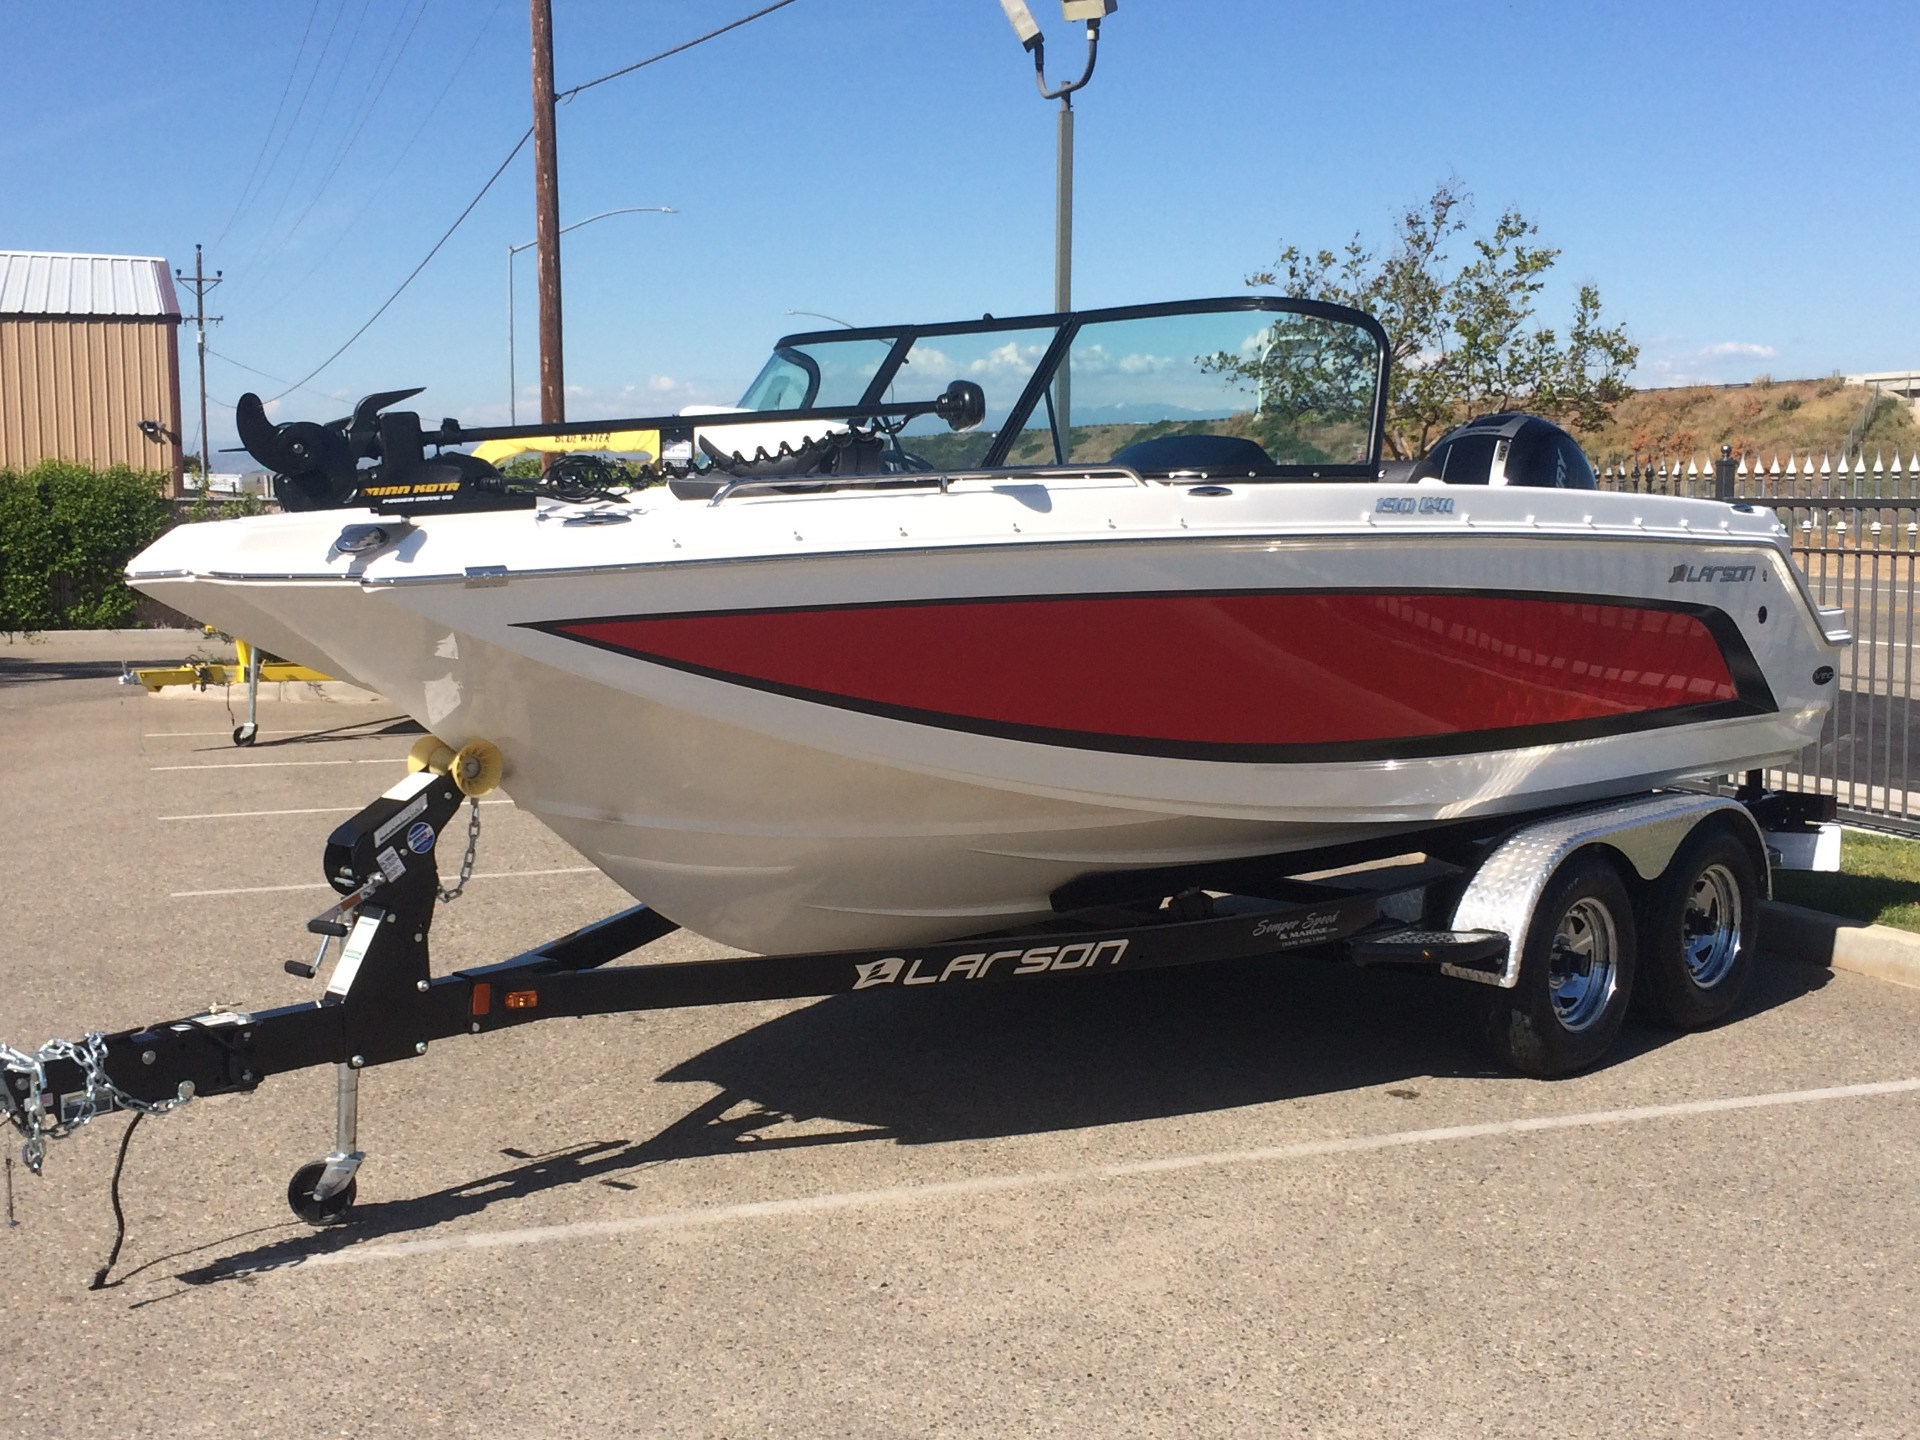 Ski and fish larson boats for sale for Fish and ski boats for sale